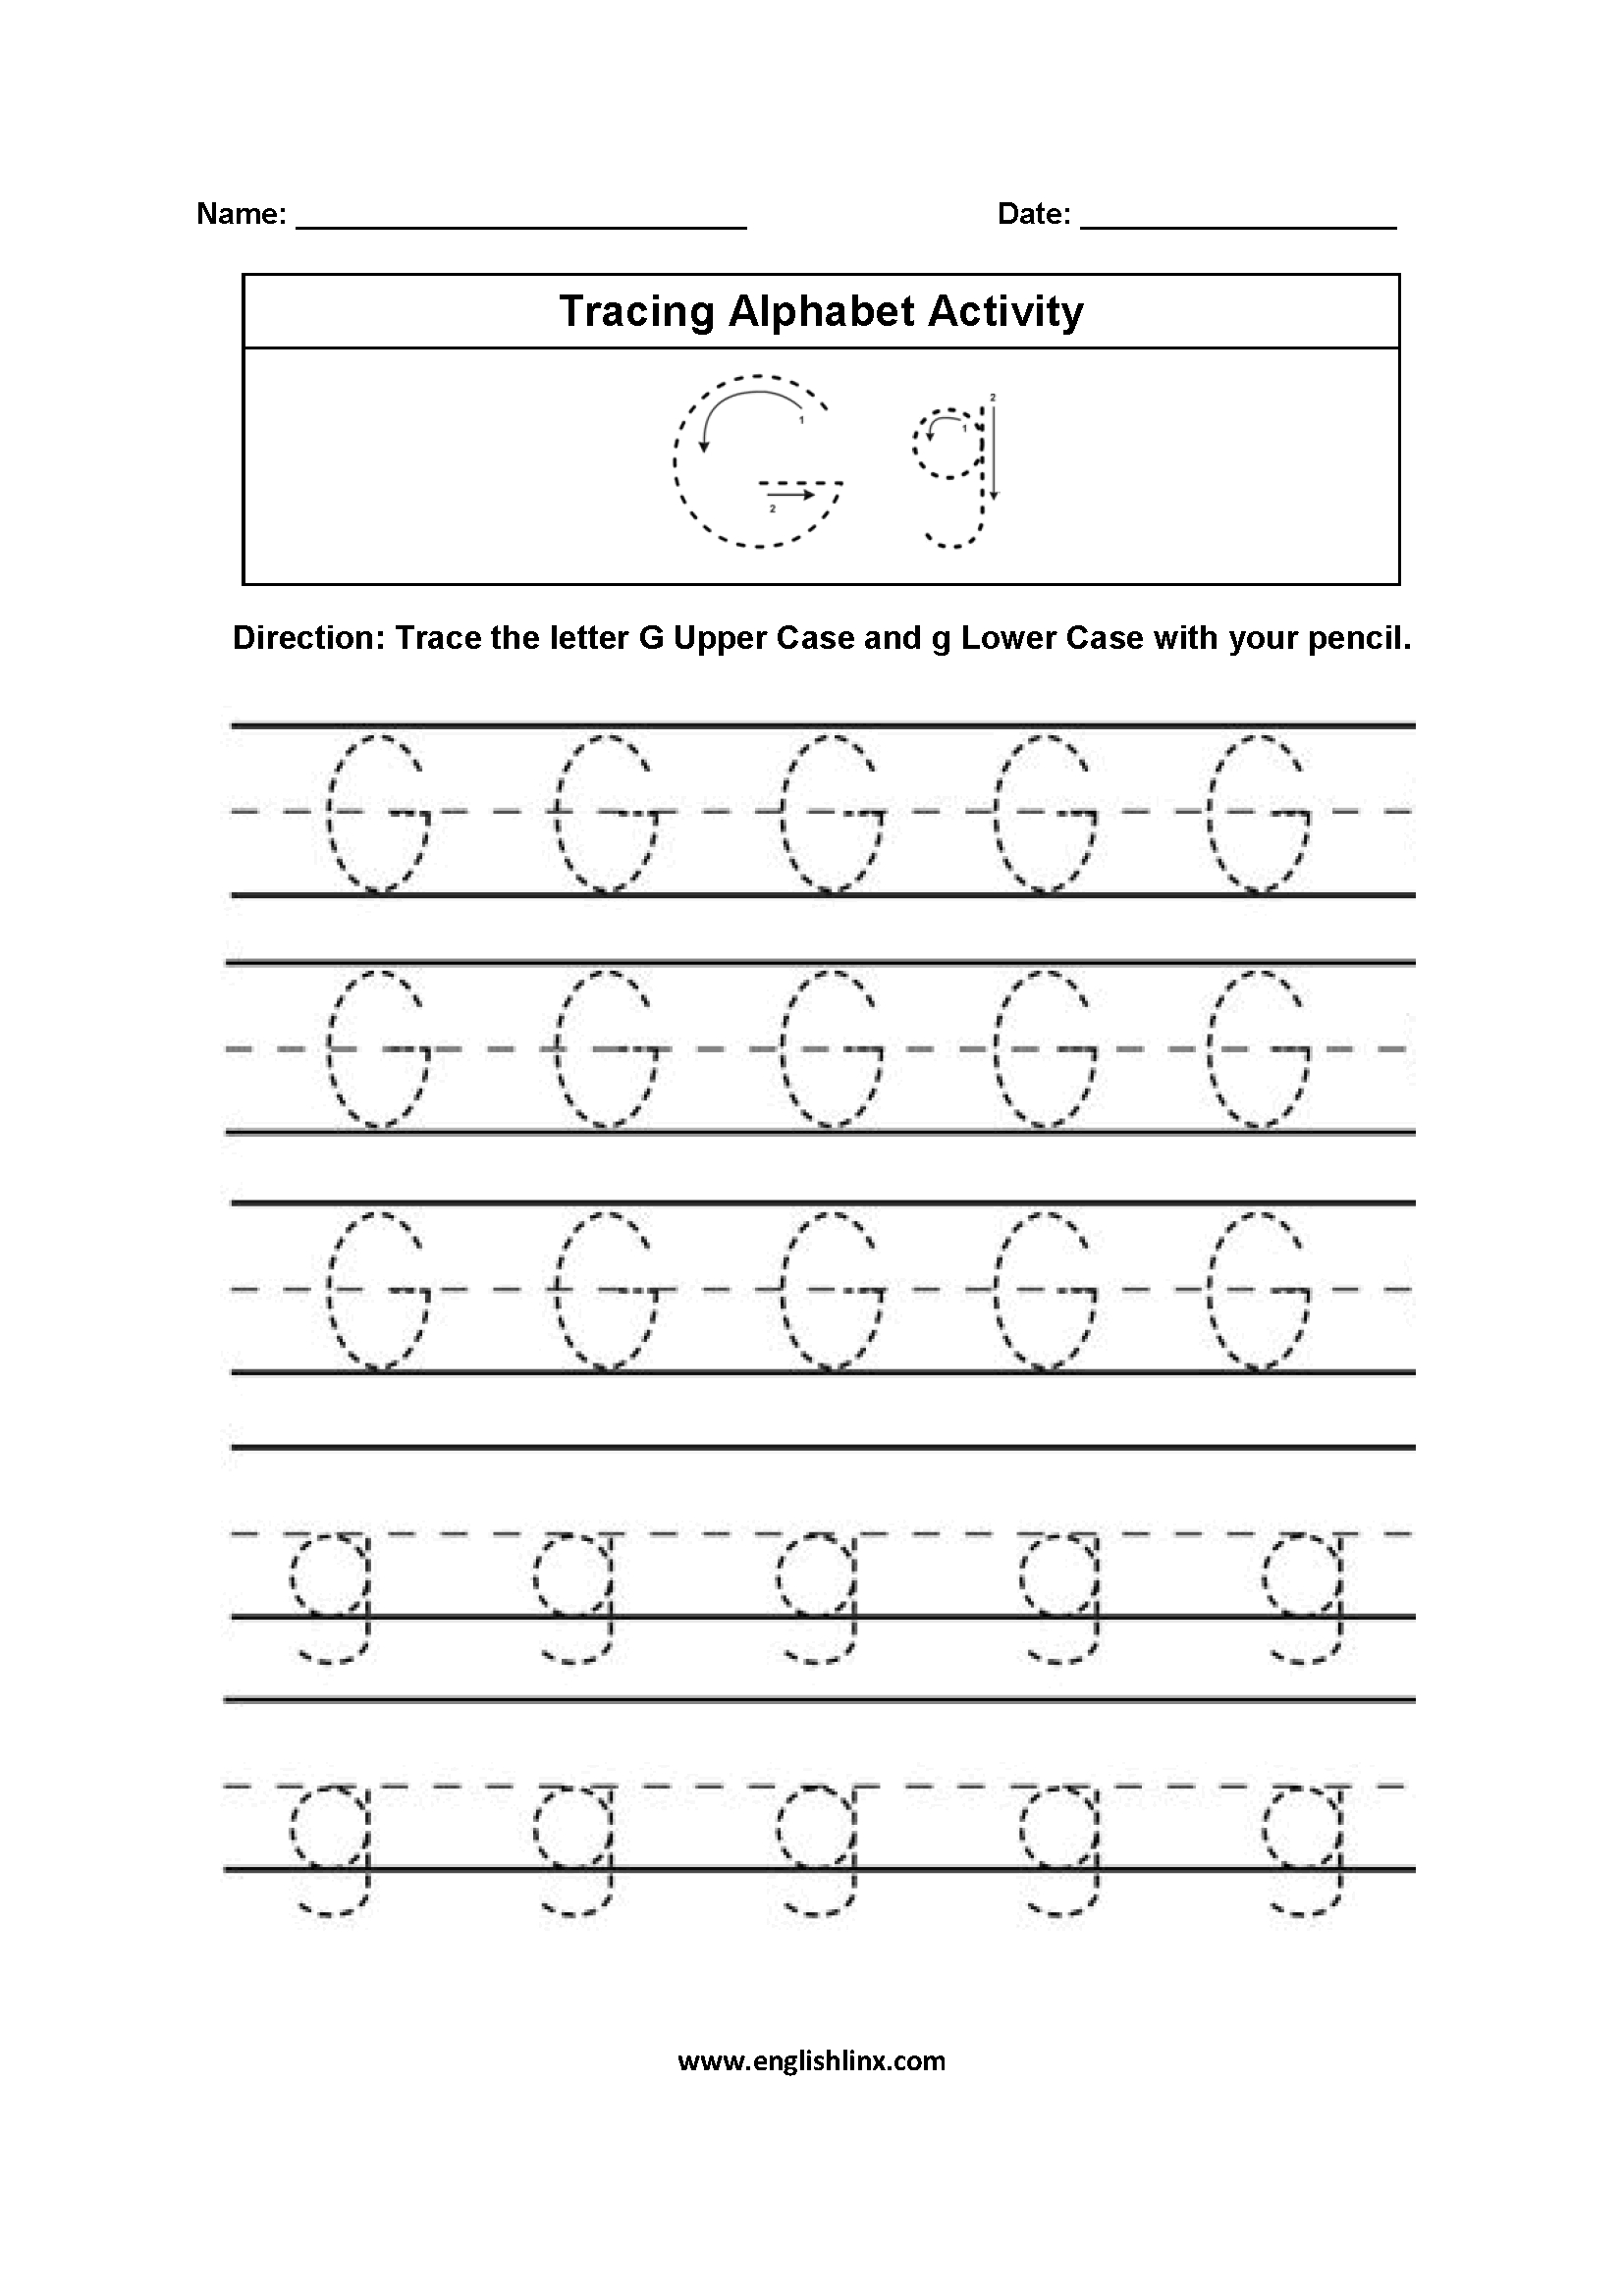 Alphabet Worksheets | Tracing Alphabet Worksheets for Letter G Tracing Page